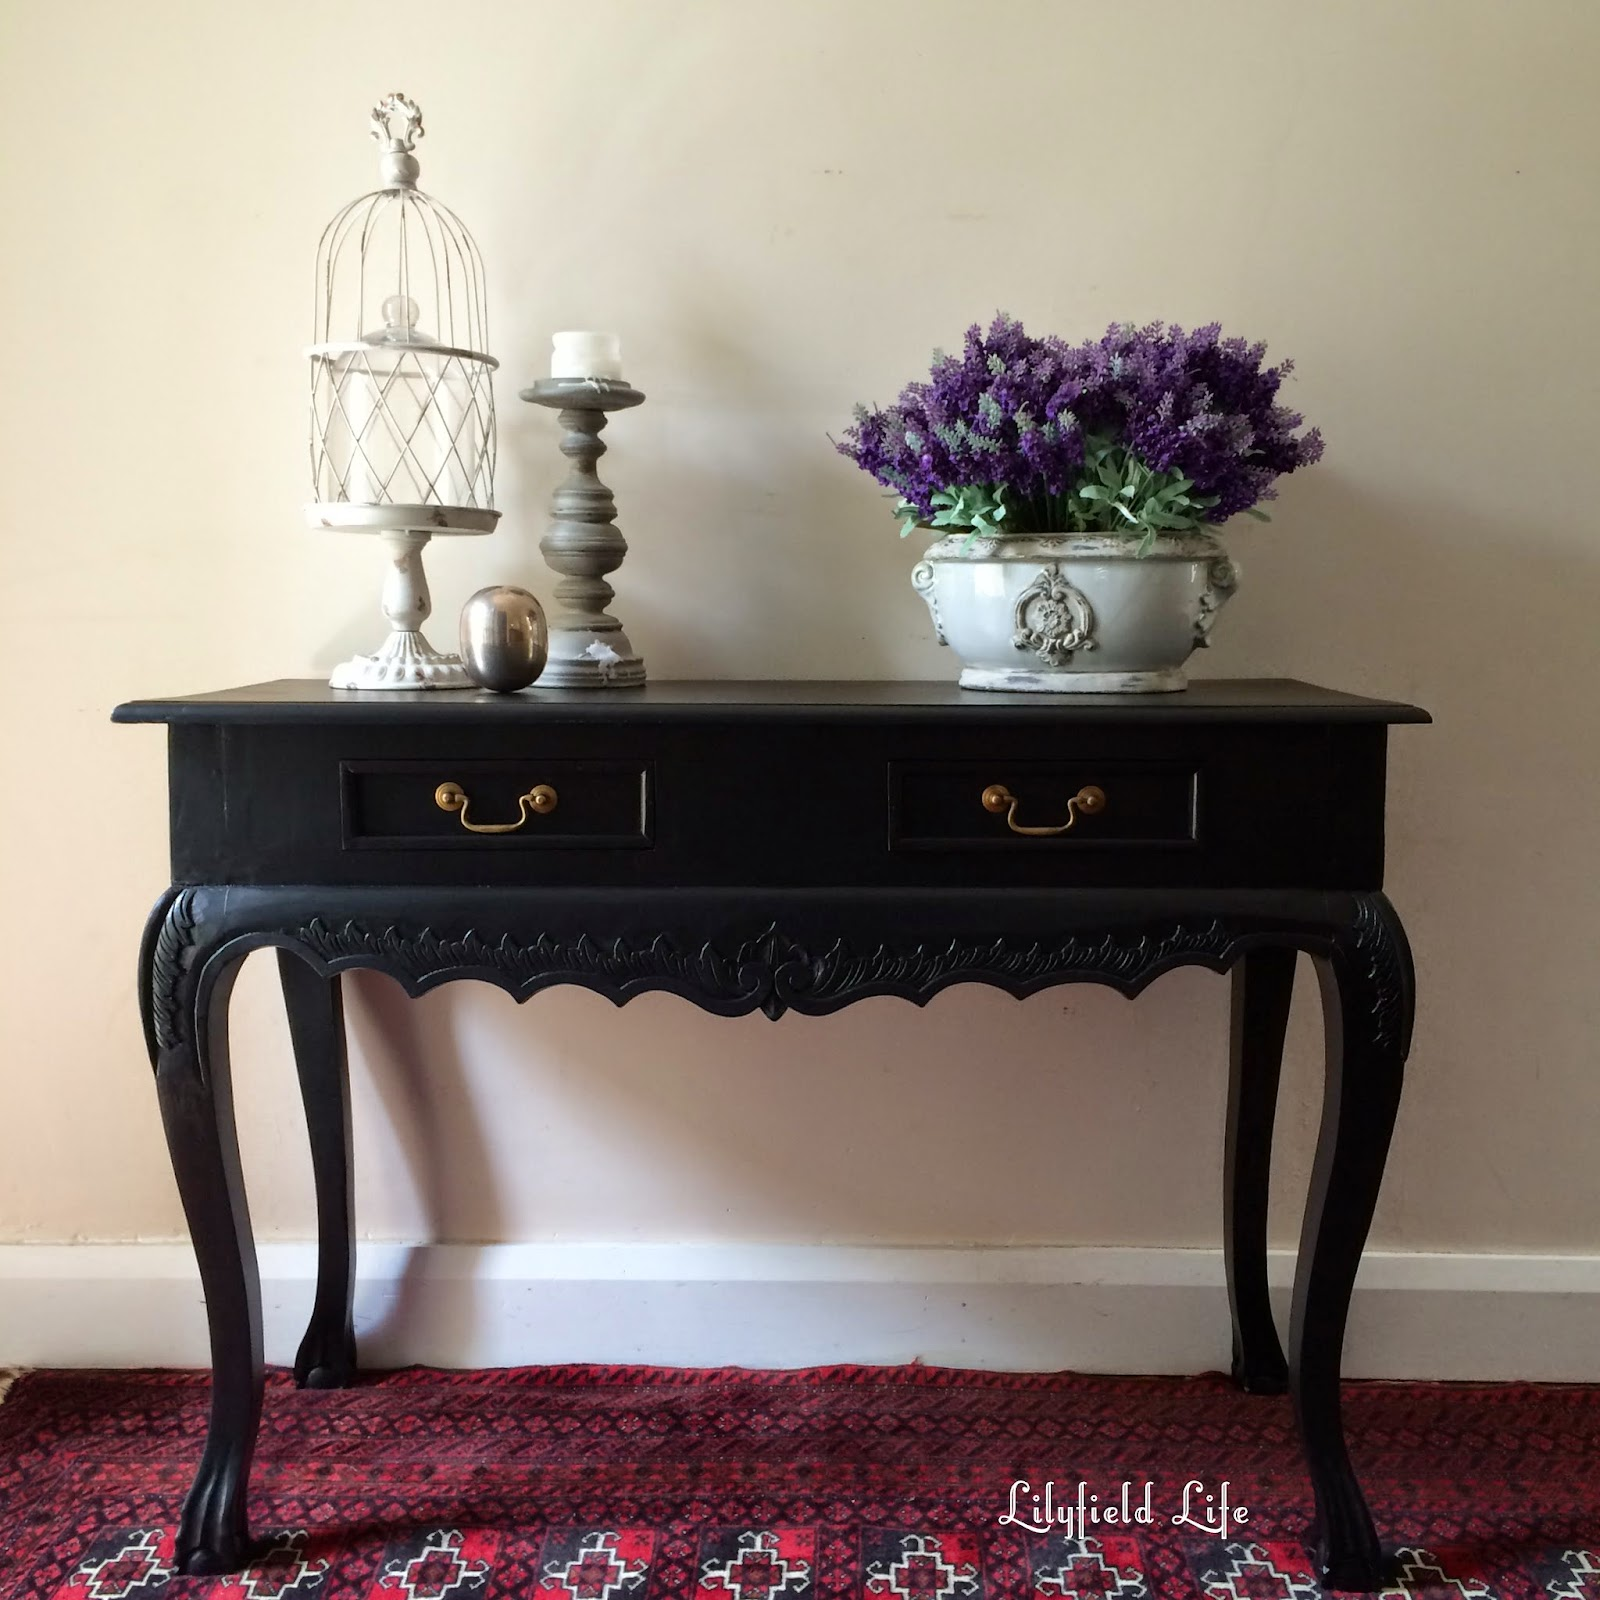 Delicieux A Black Hall Table, Morning Walks And Spring Flowers